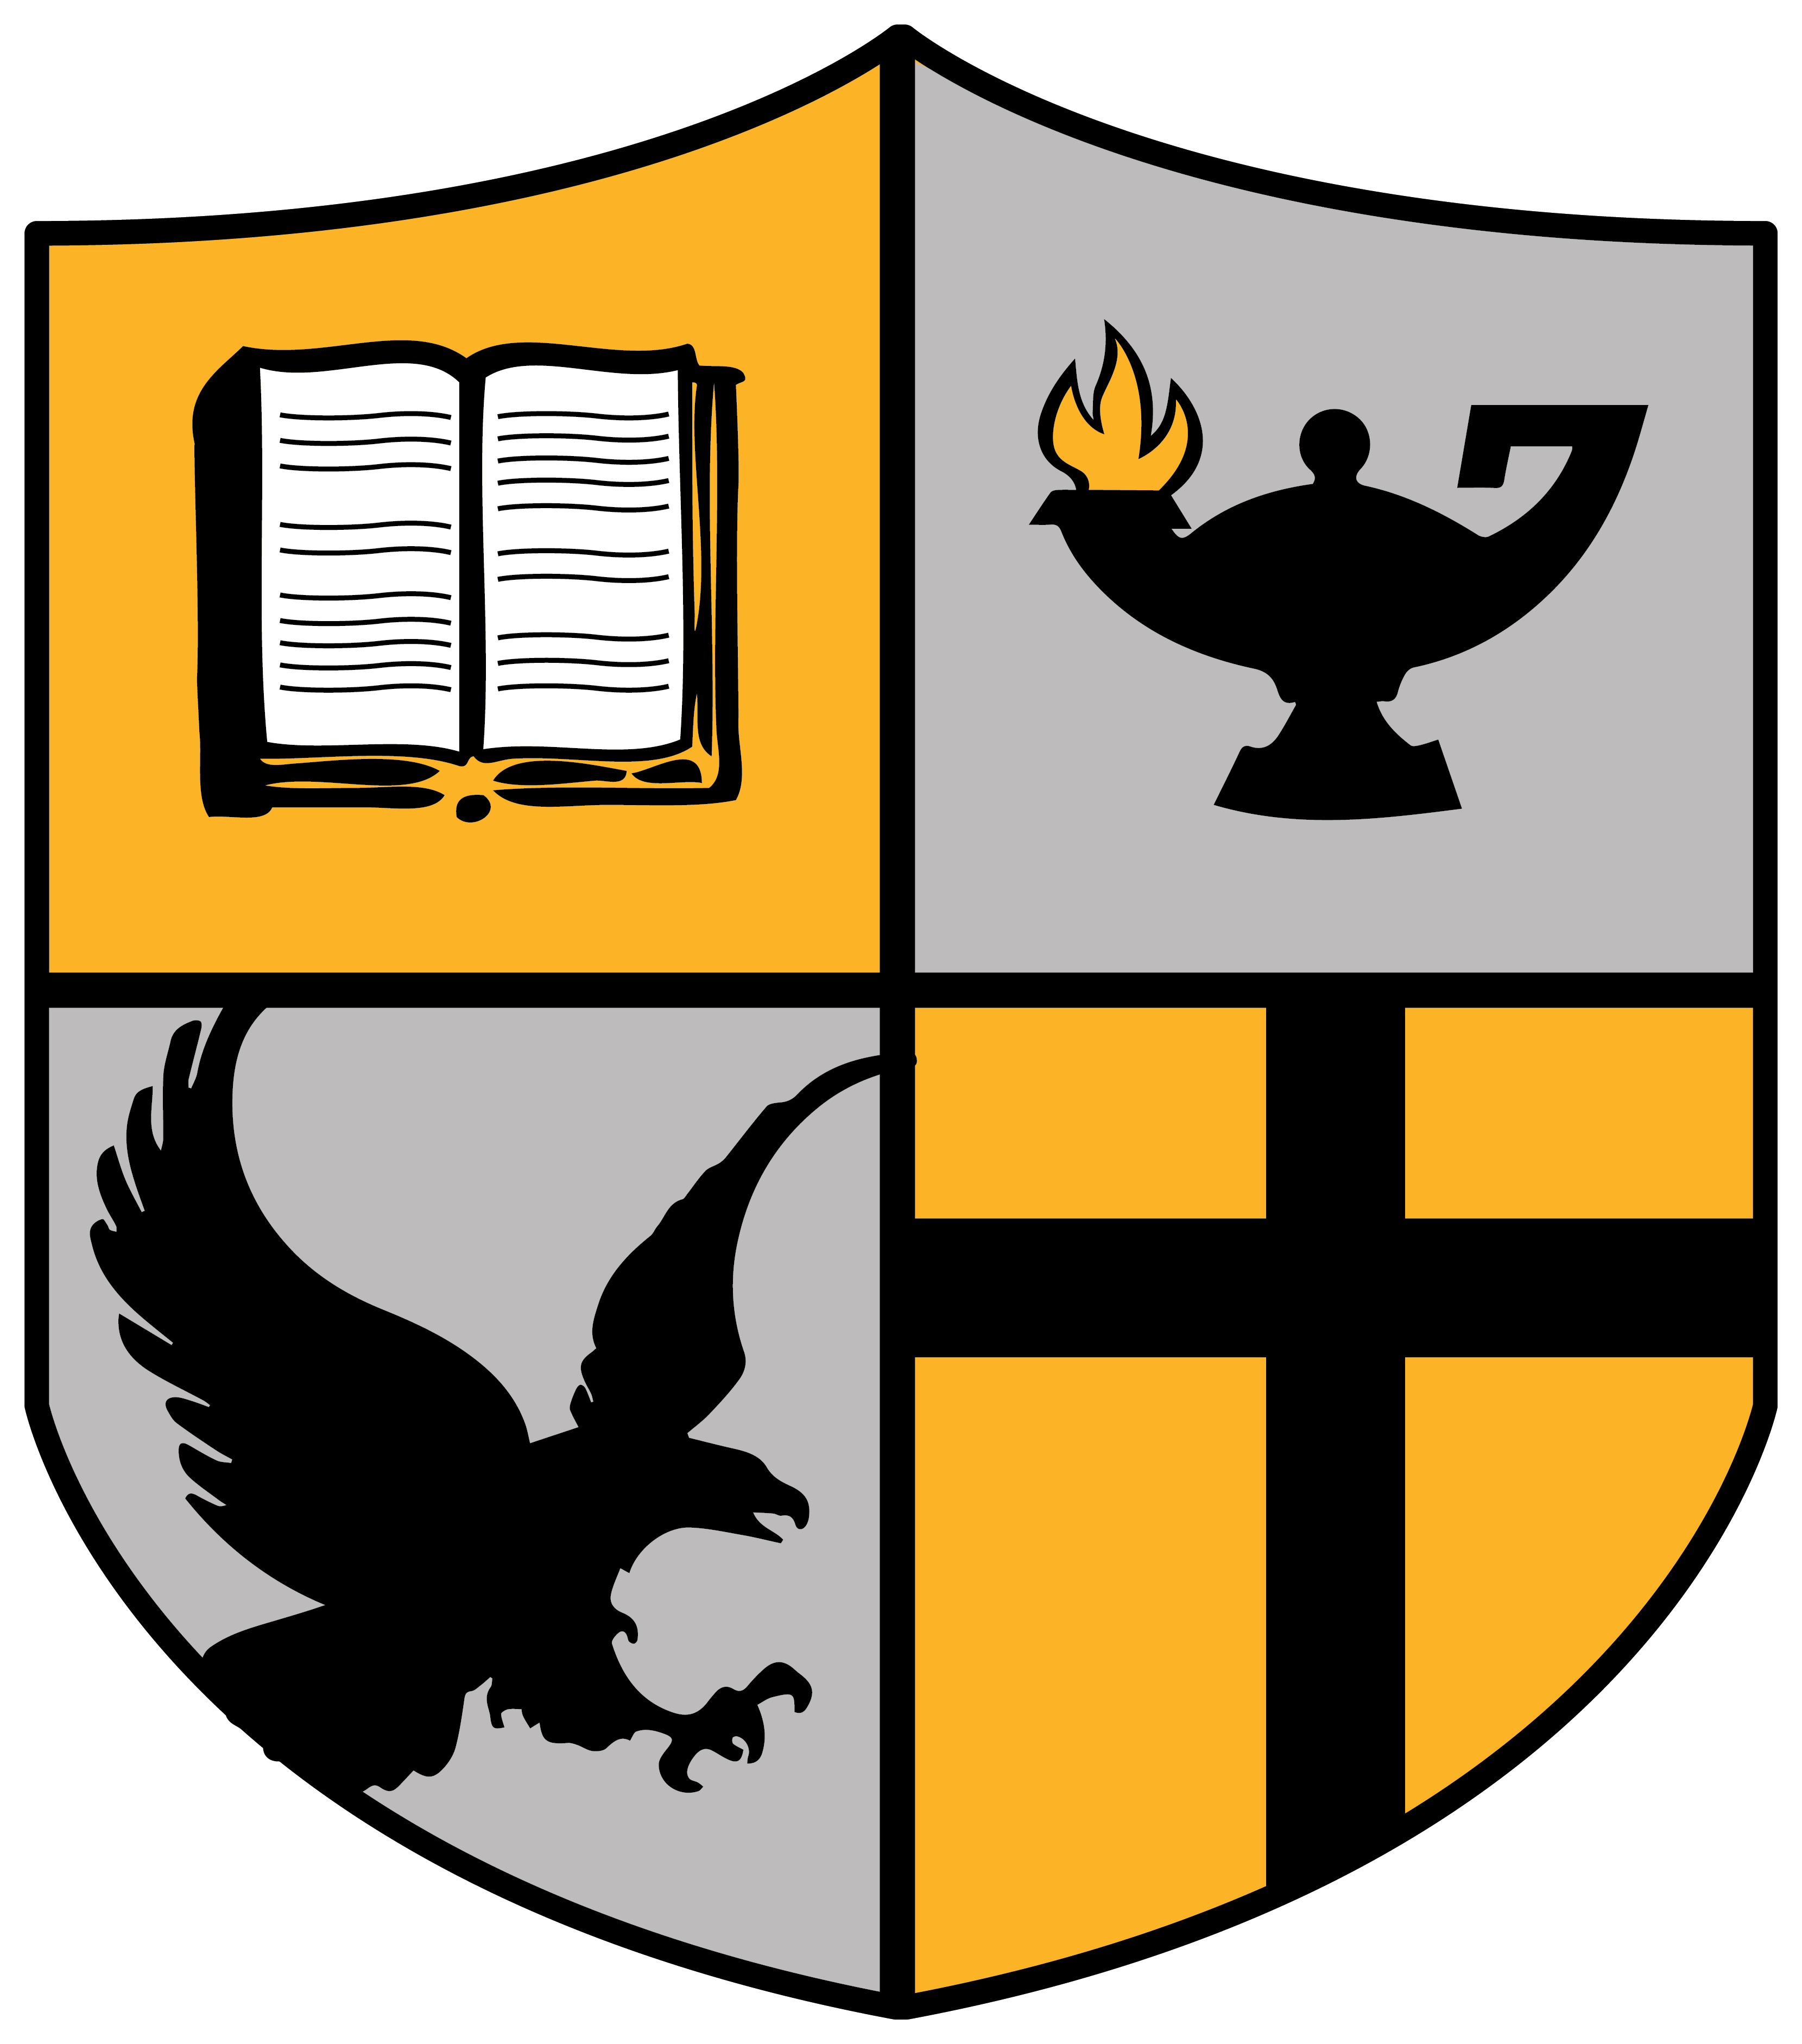 School emblem clipart images gallery for free download.